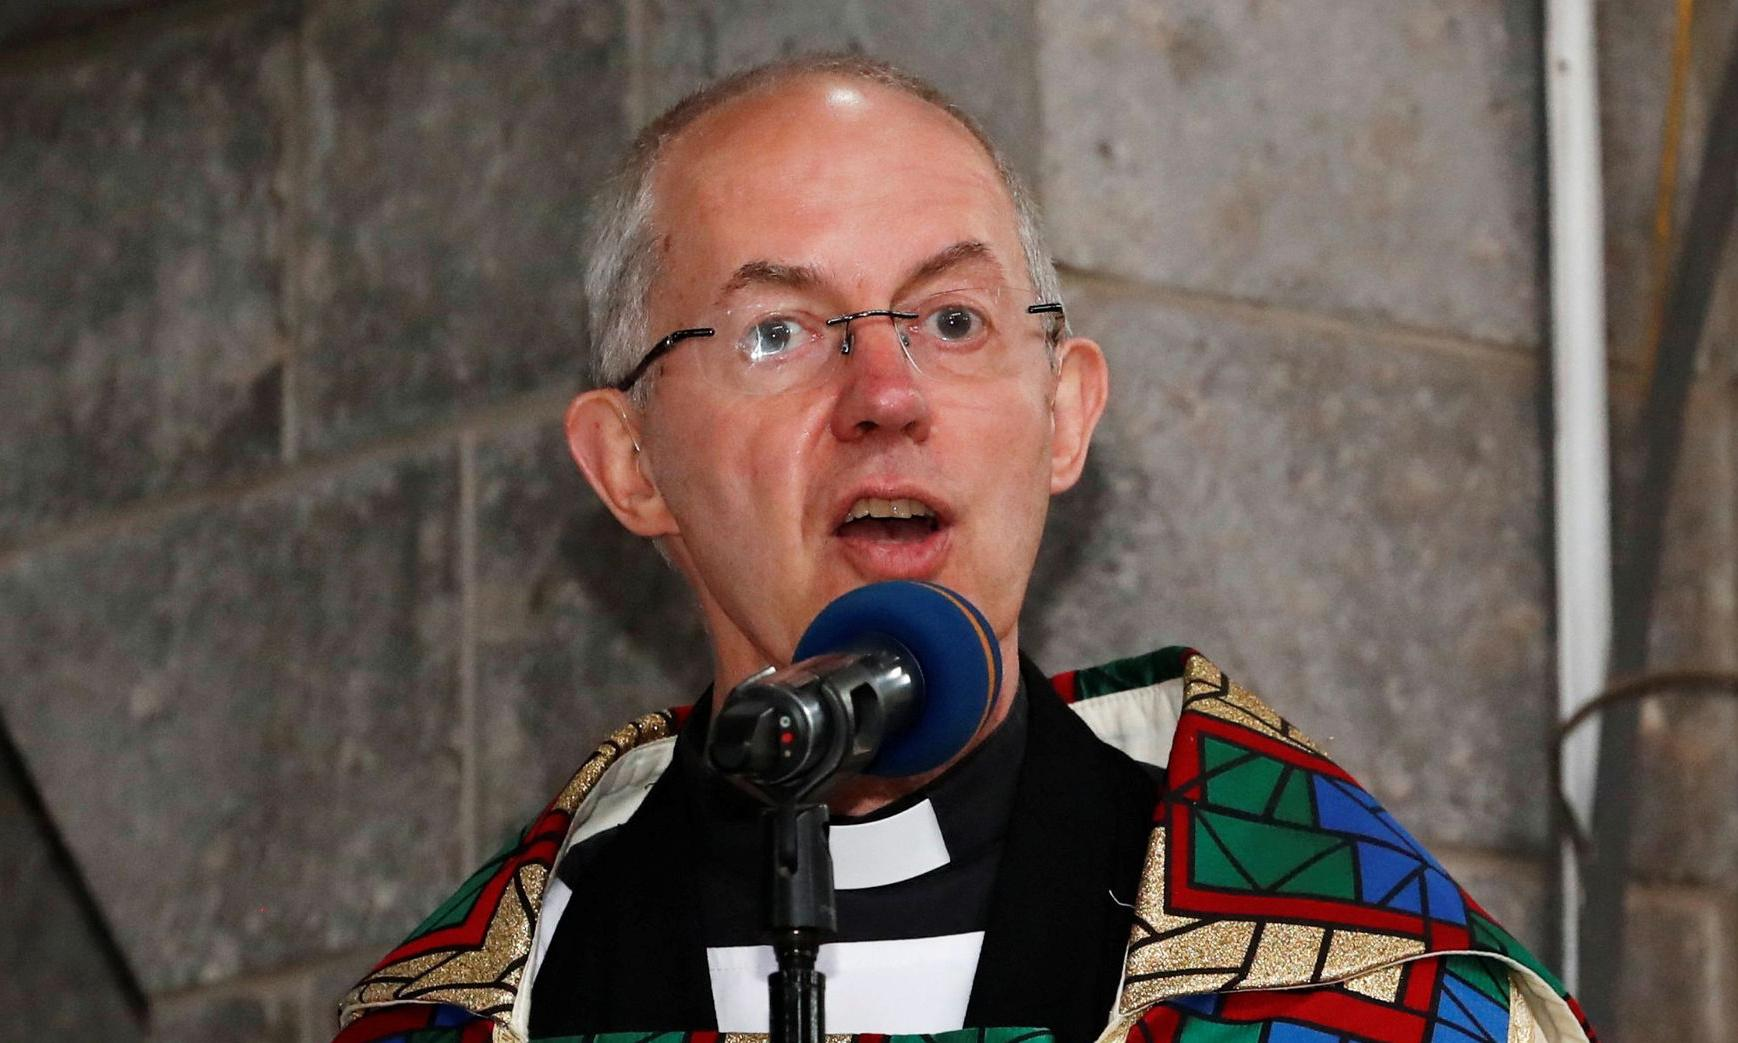 Justin Welby says he is 'sorry and ashamed' over church's racism